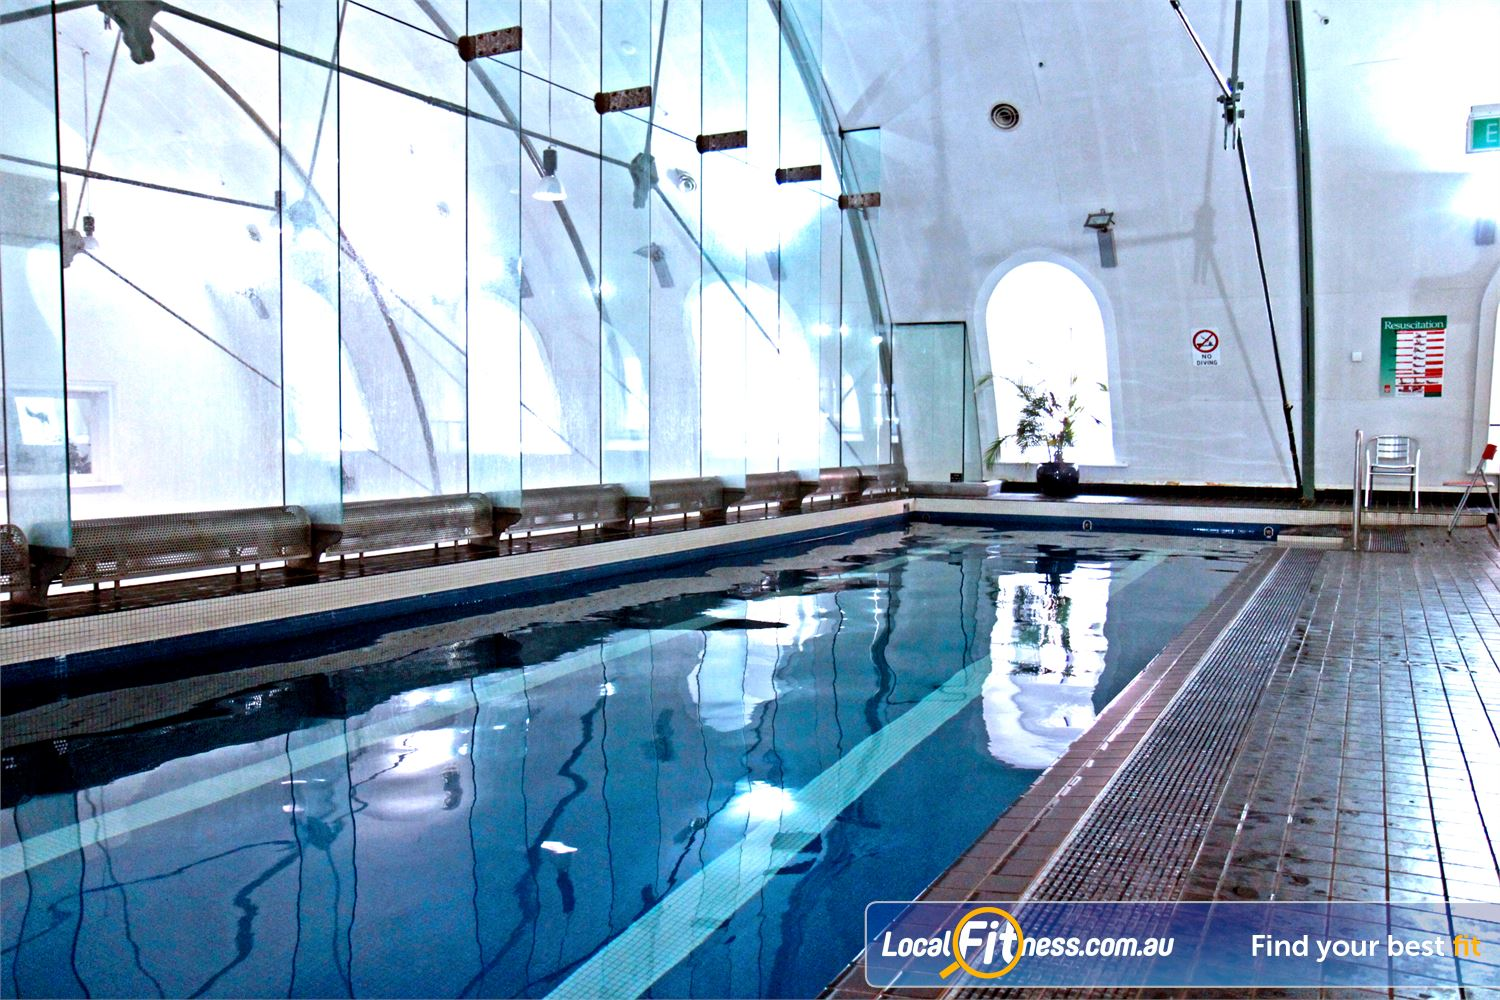 Goodlife Health Clubs Martin Place Swimming Pool Near World Square Our Sydney Swimming Pool Is